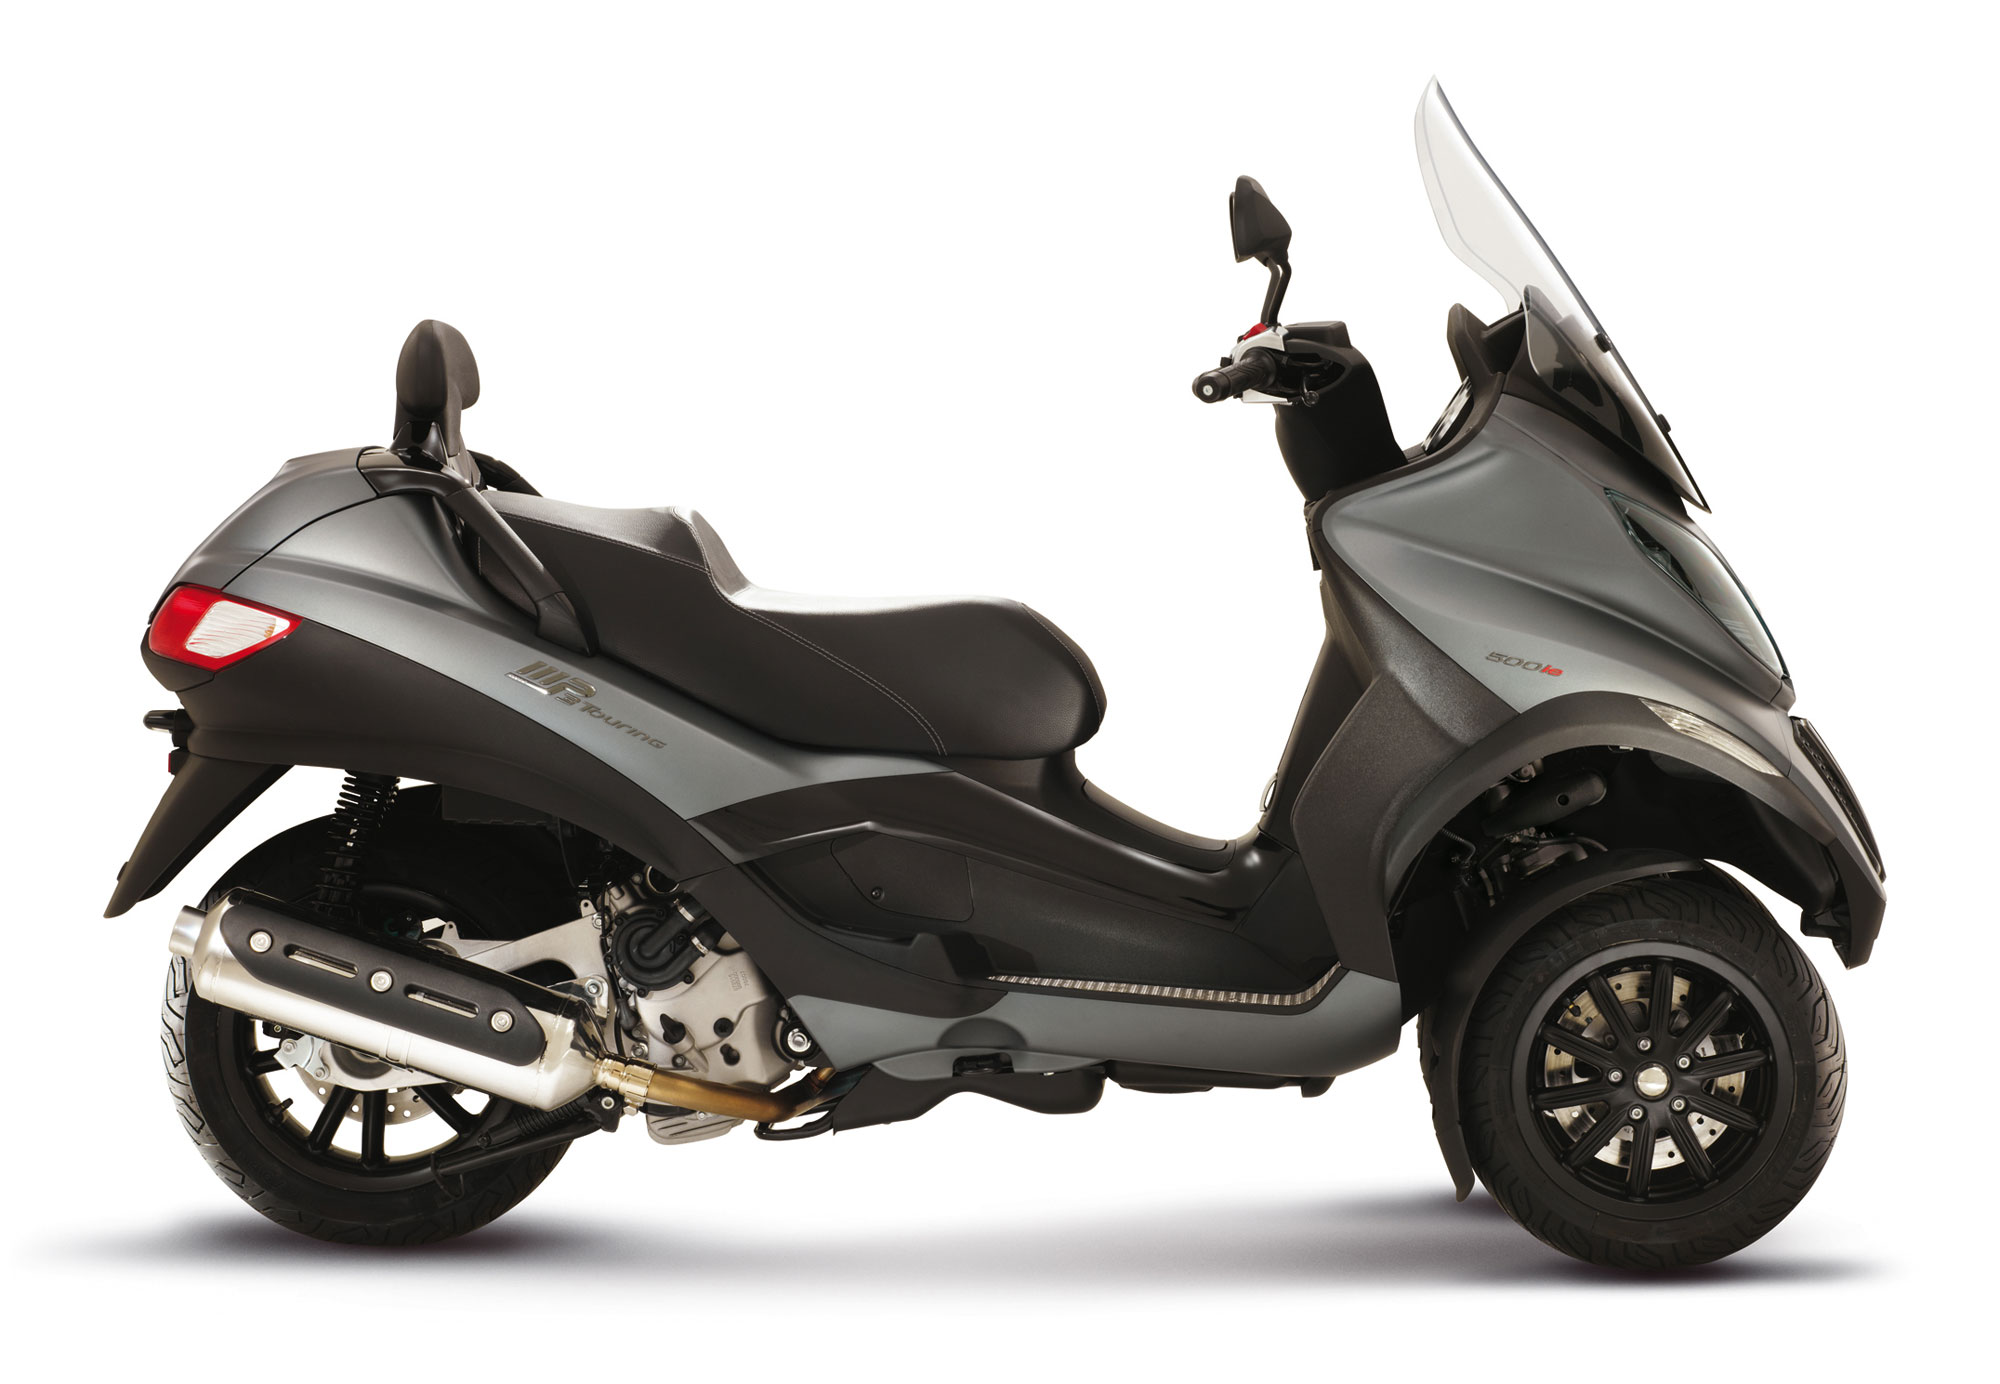 Piaggio MP3 Touring 125 2012 images #120339